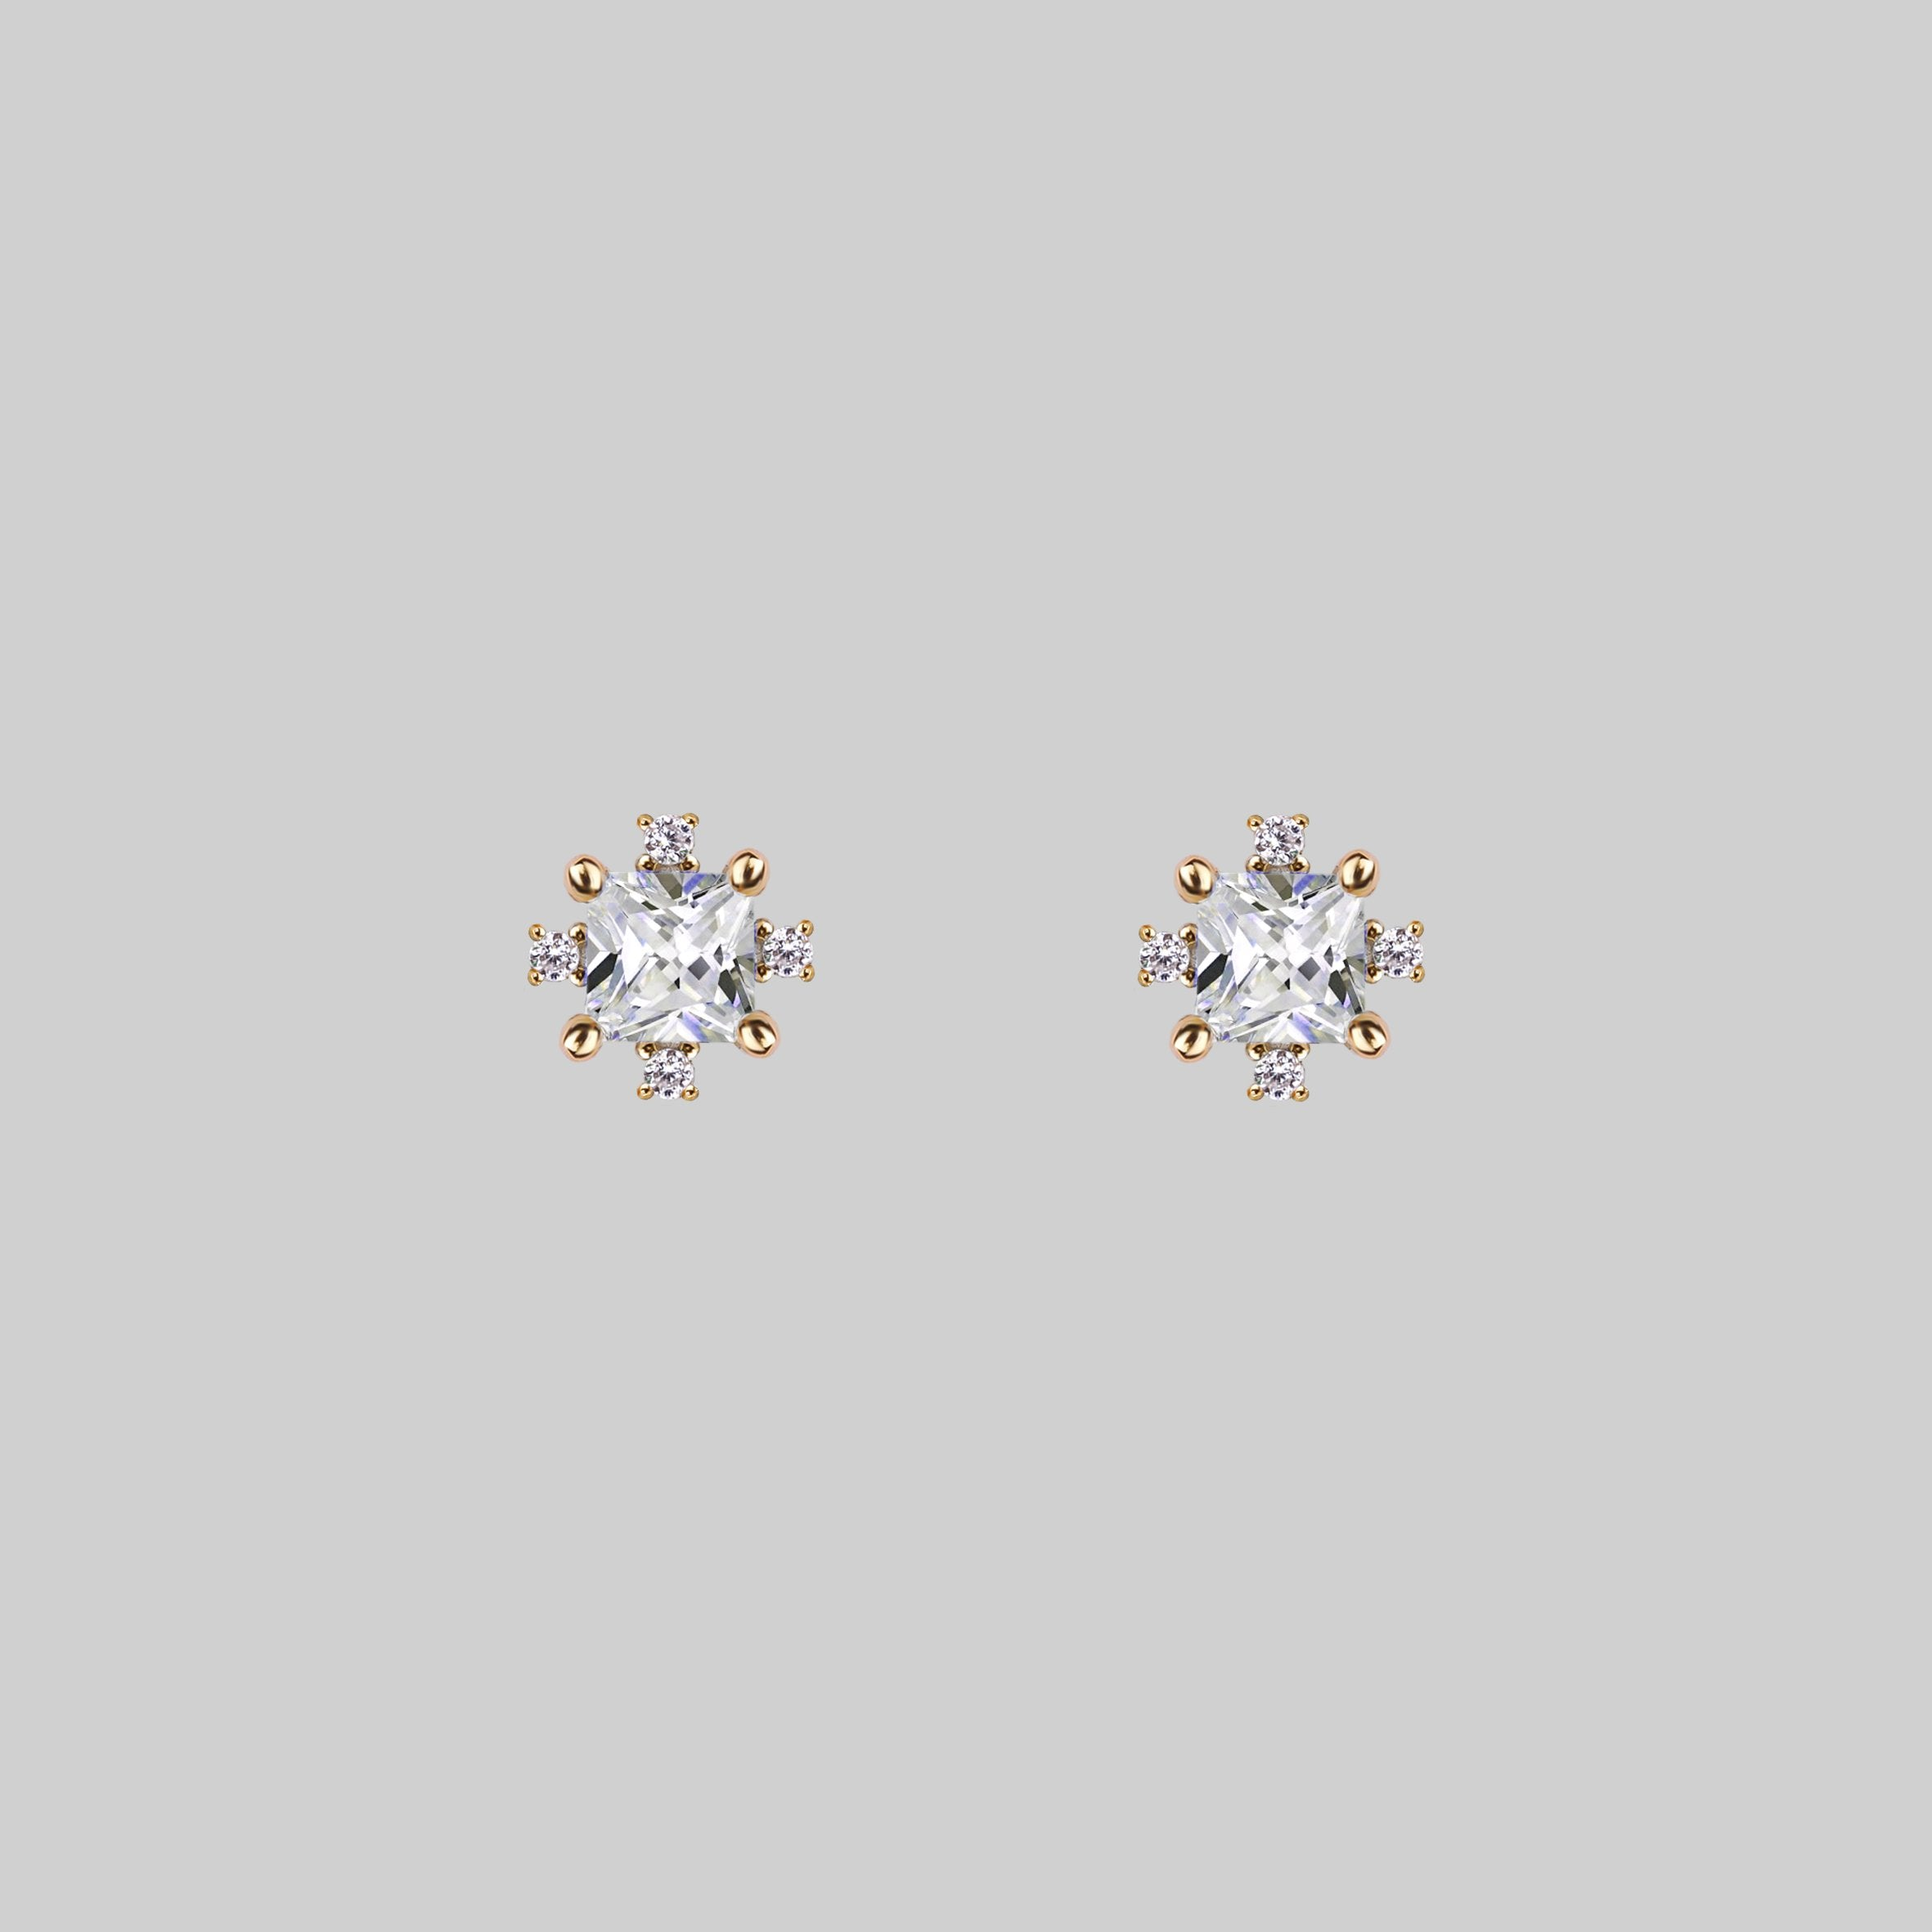 Sparkling Cubic Zirconia cluster ear studs